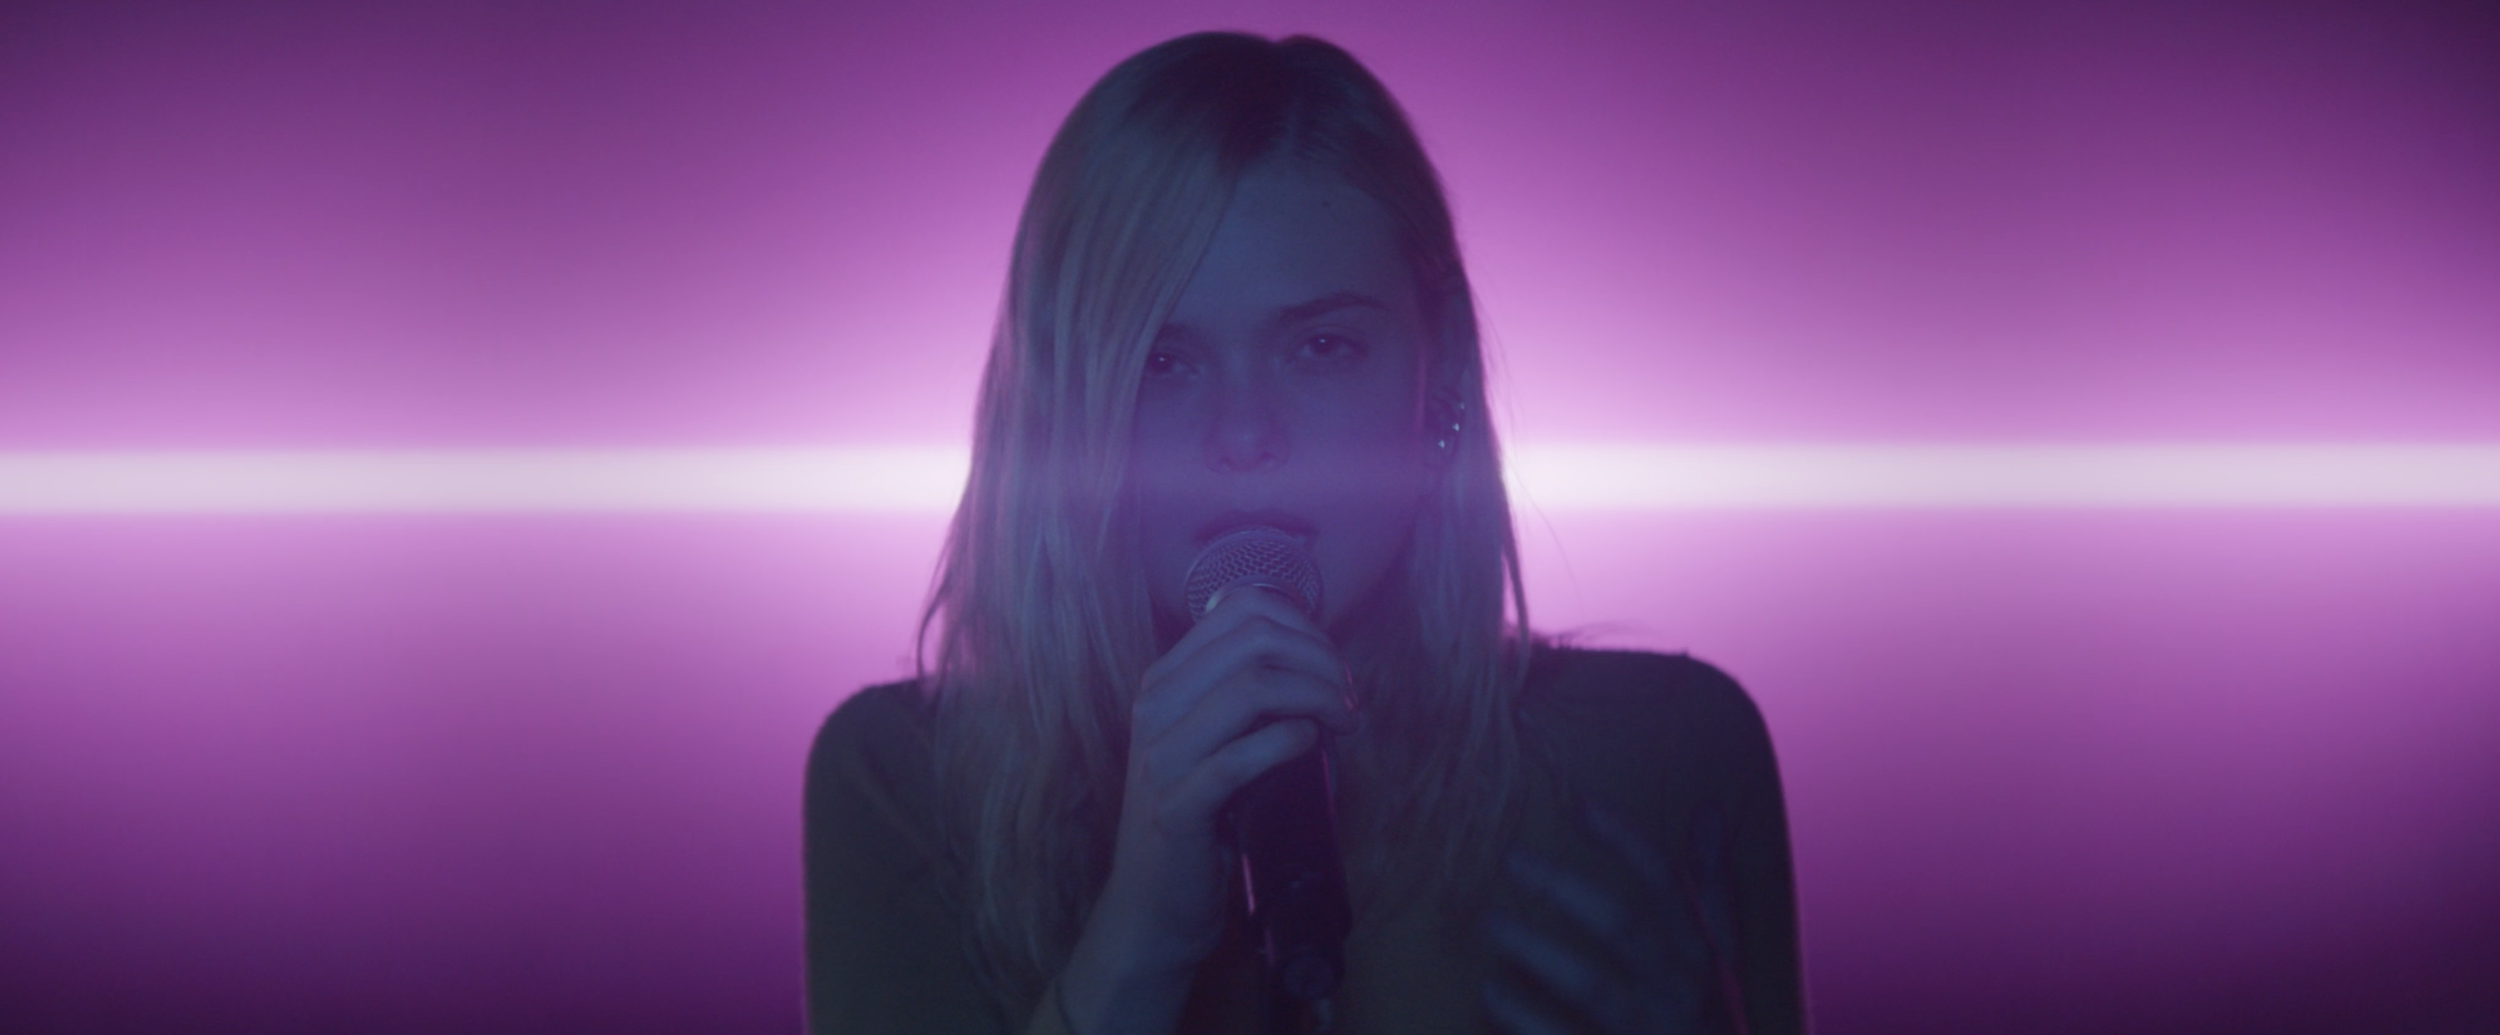 A sample of the neon vibe in Teen Spirit with Elle Fanning, photo courtesy of LD Entertainment and Bleecker Street